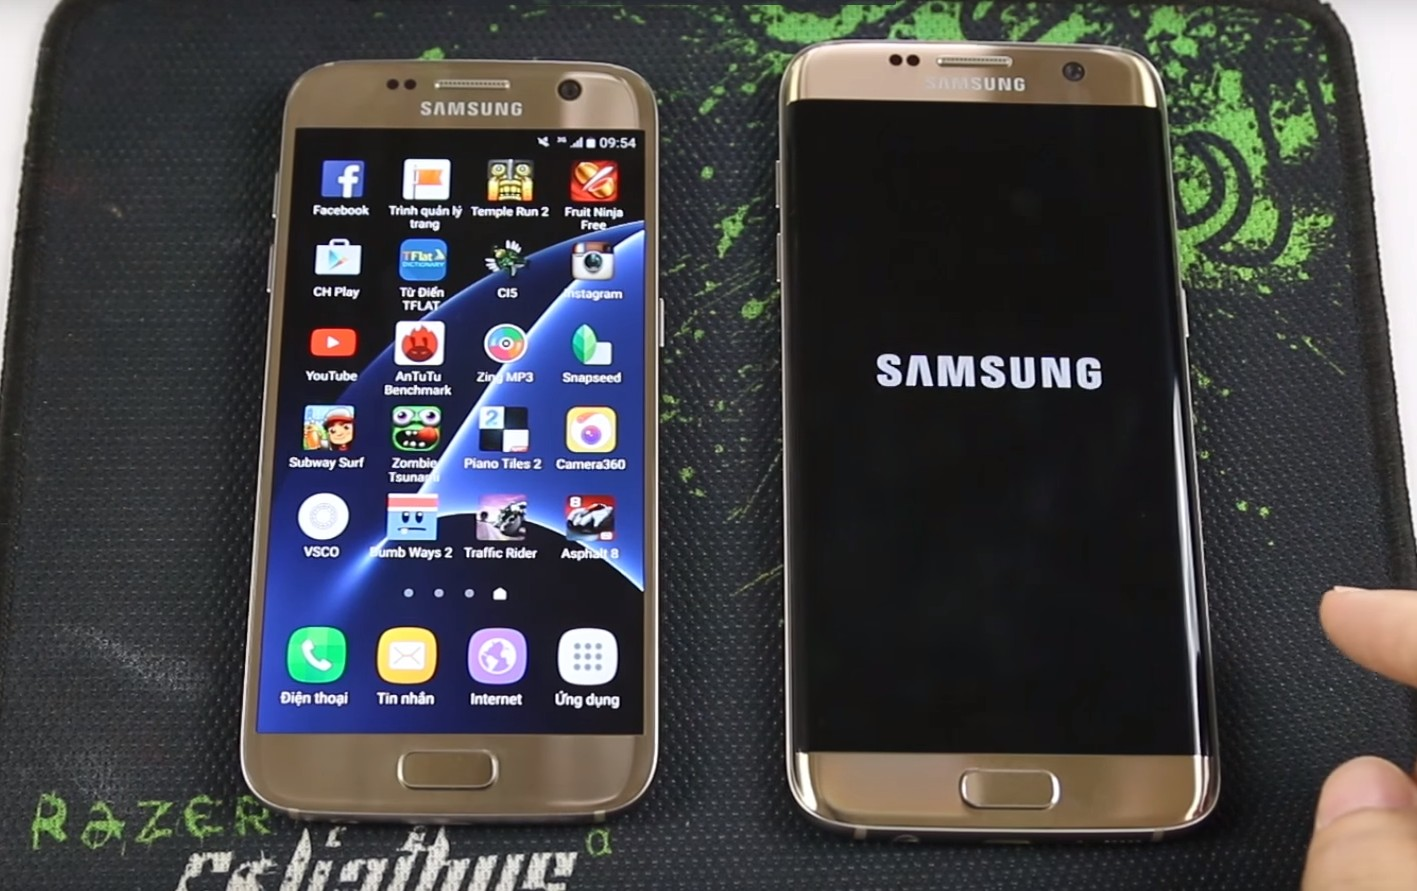 Samsung Galaxy S Ou Iphone